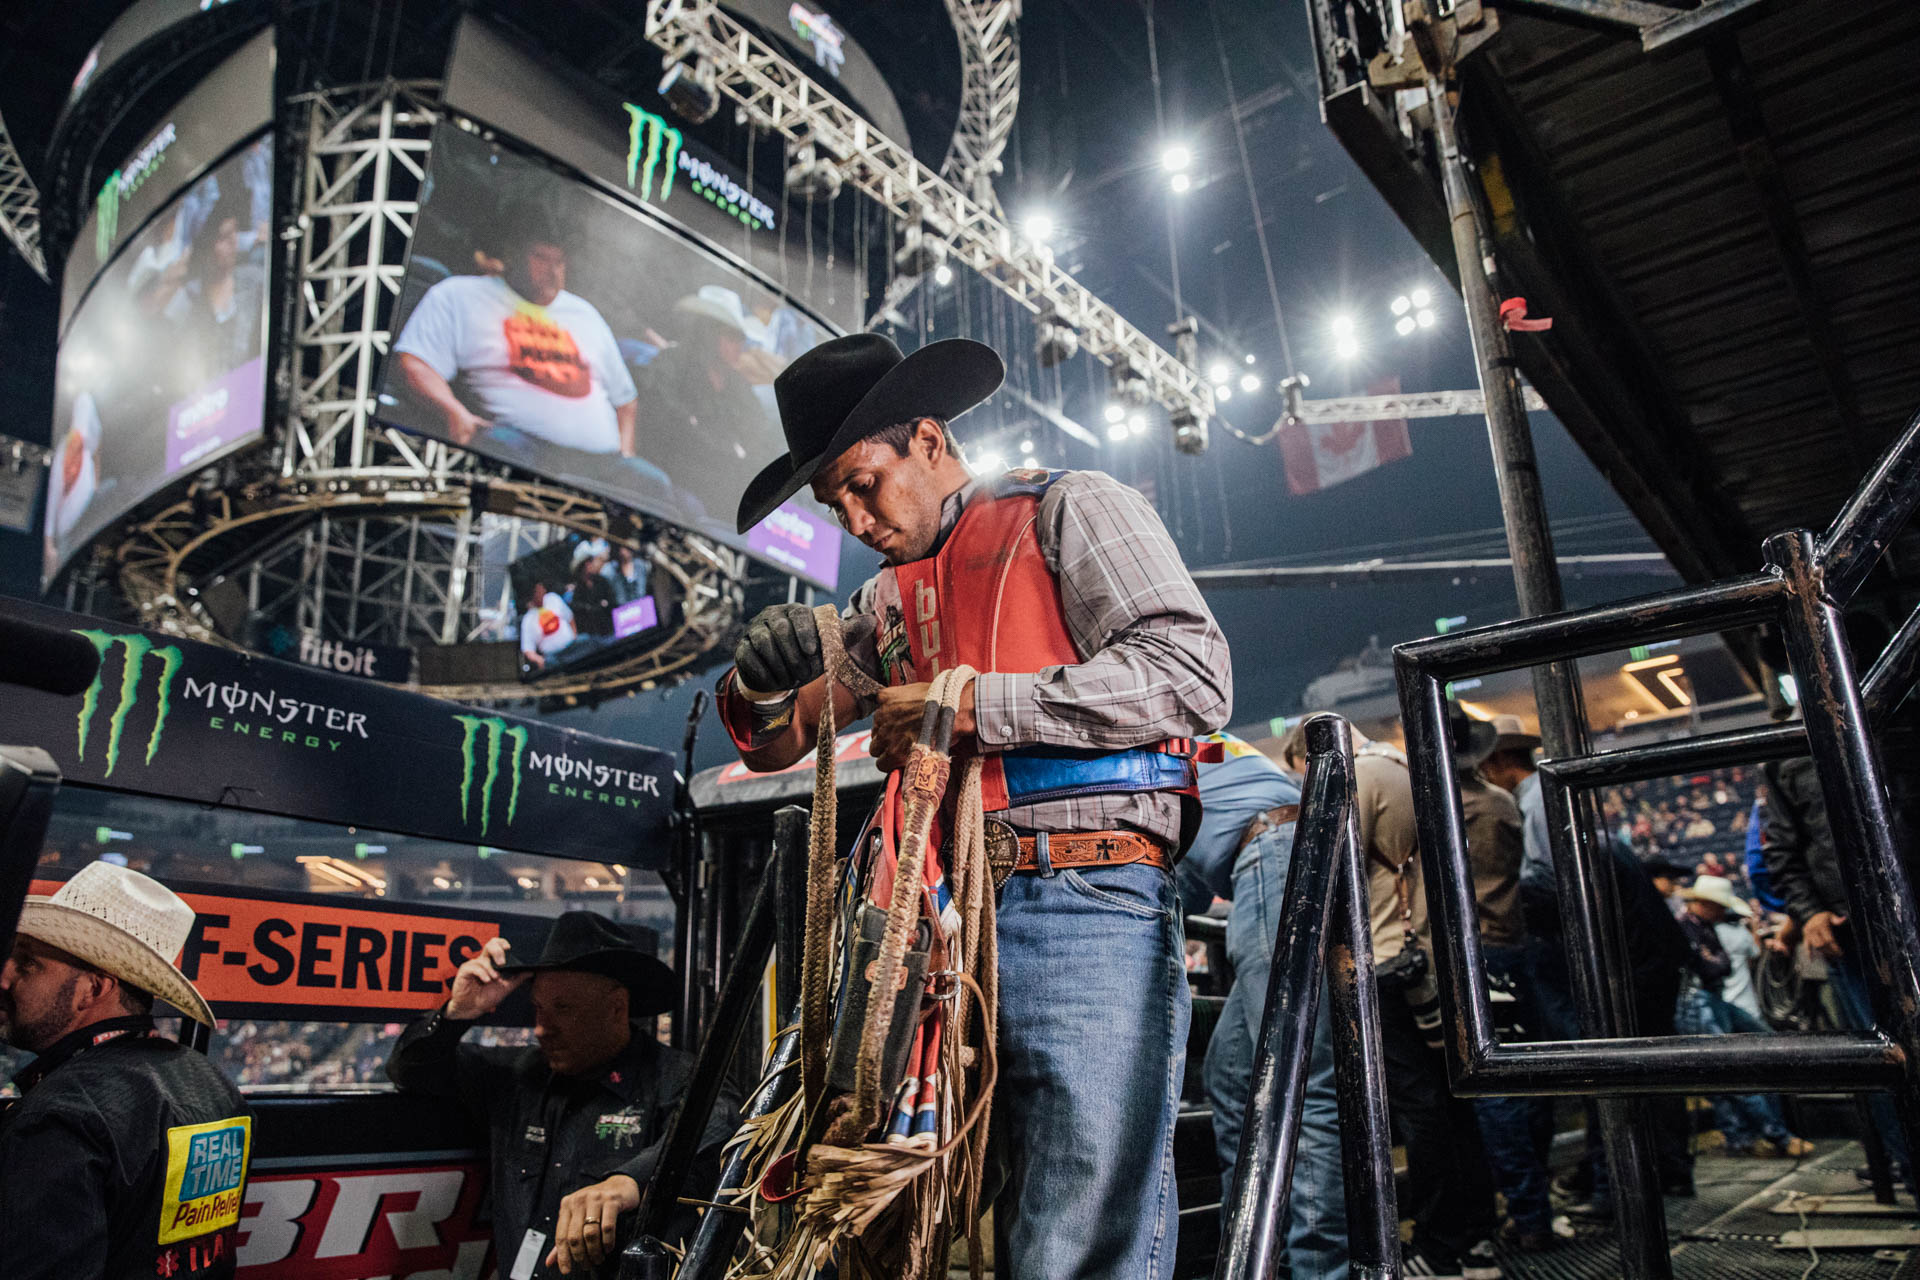 pbr-bull-riding-monster-behind-the-scenes.JPG